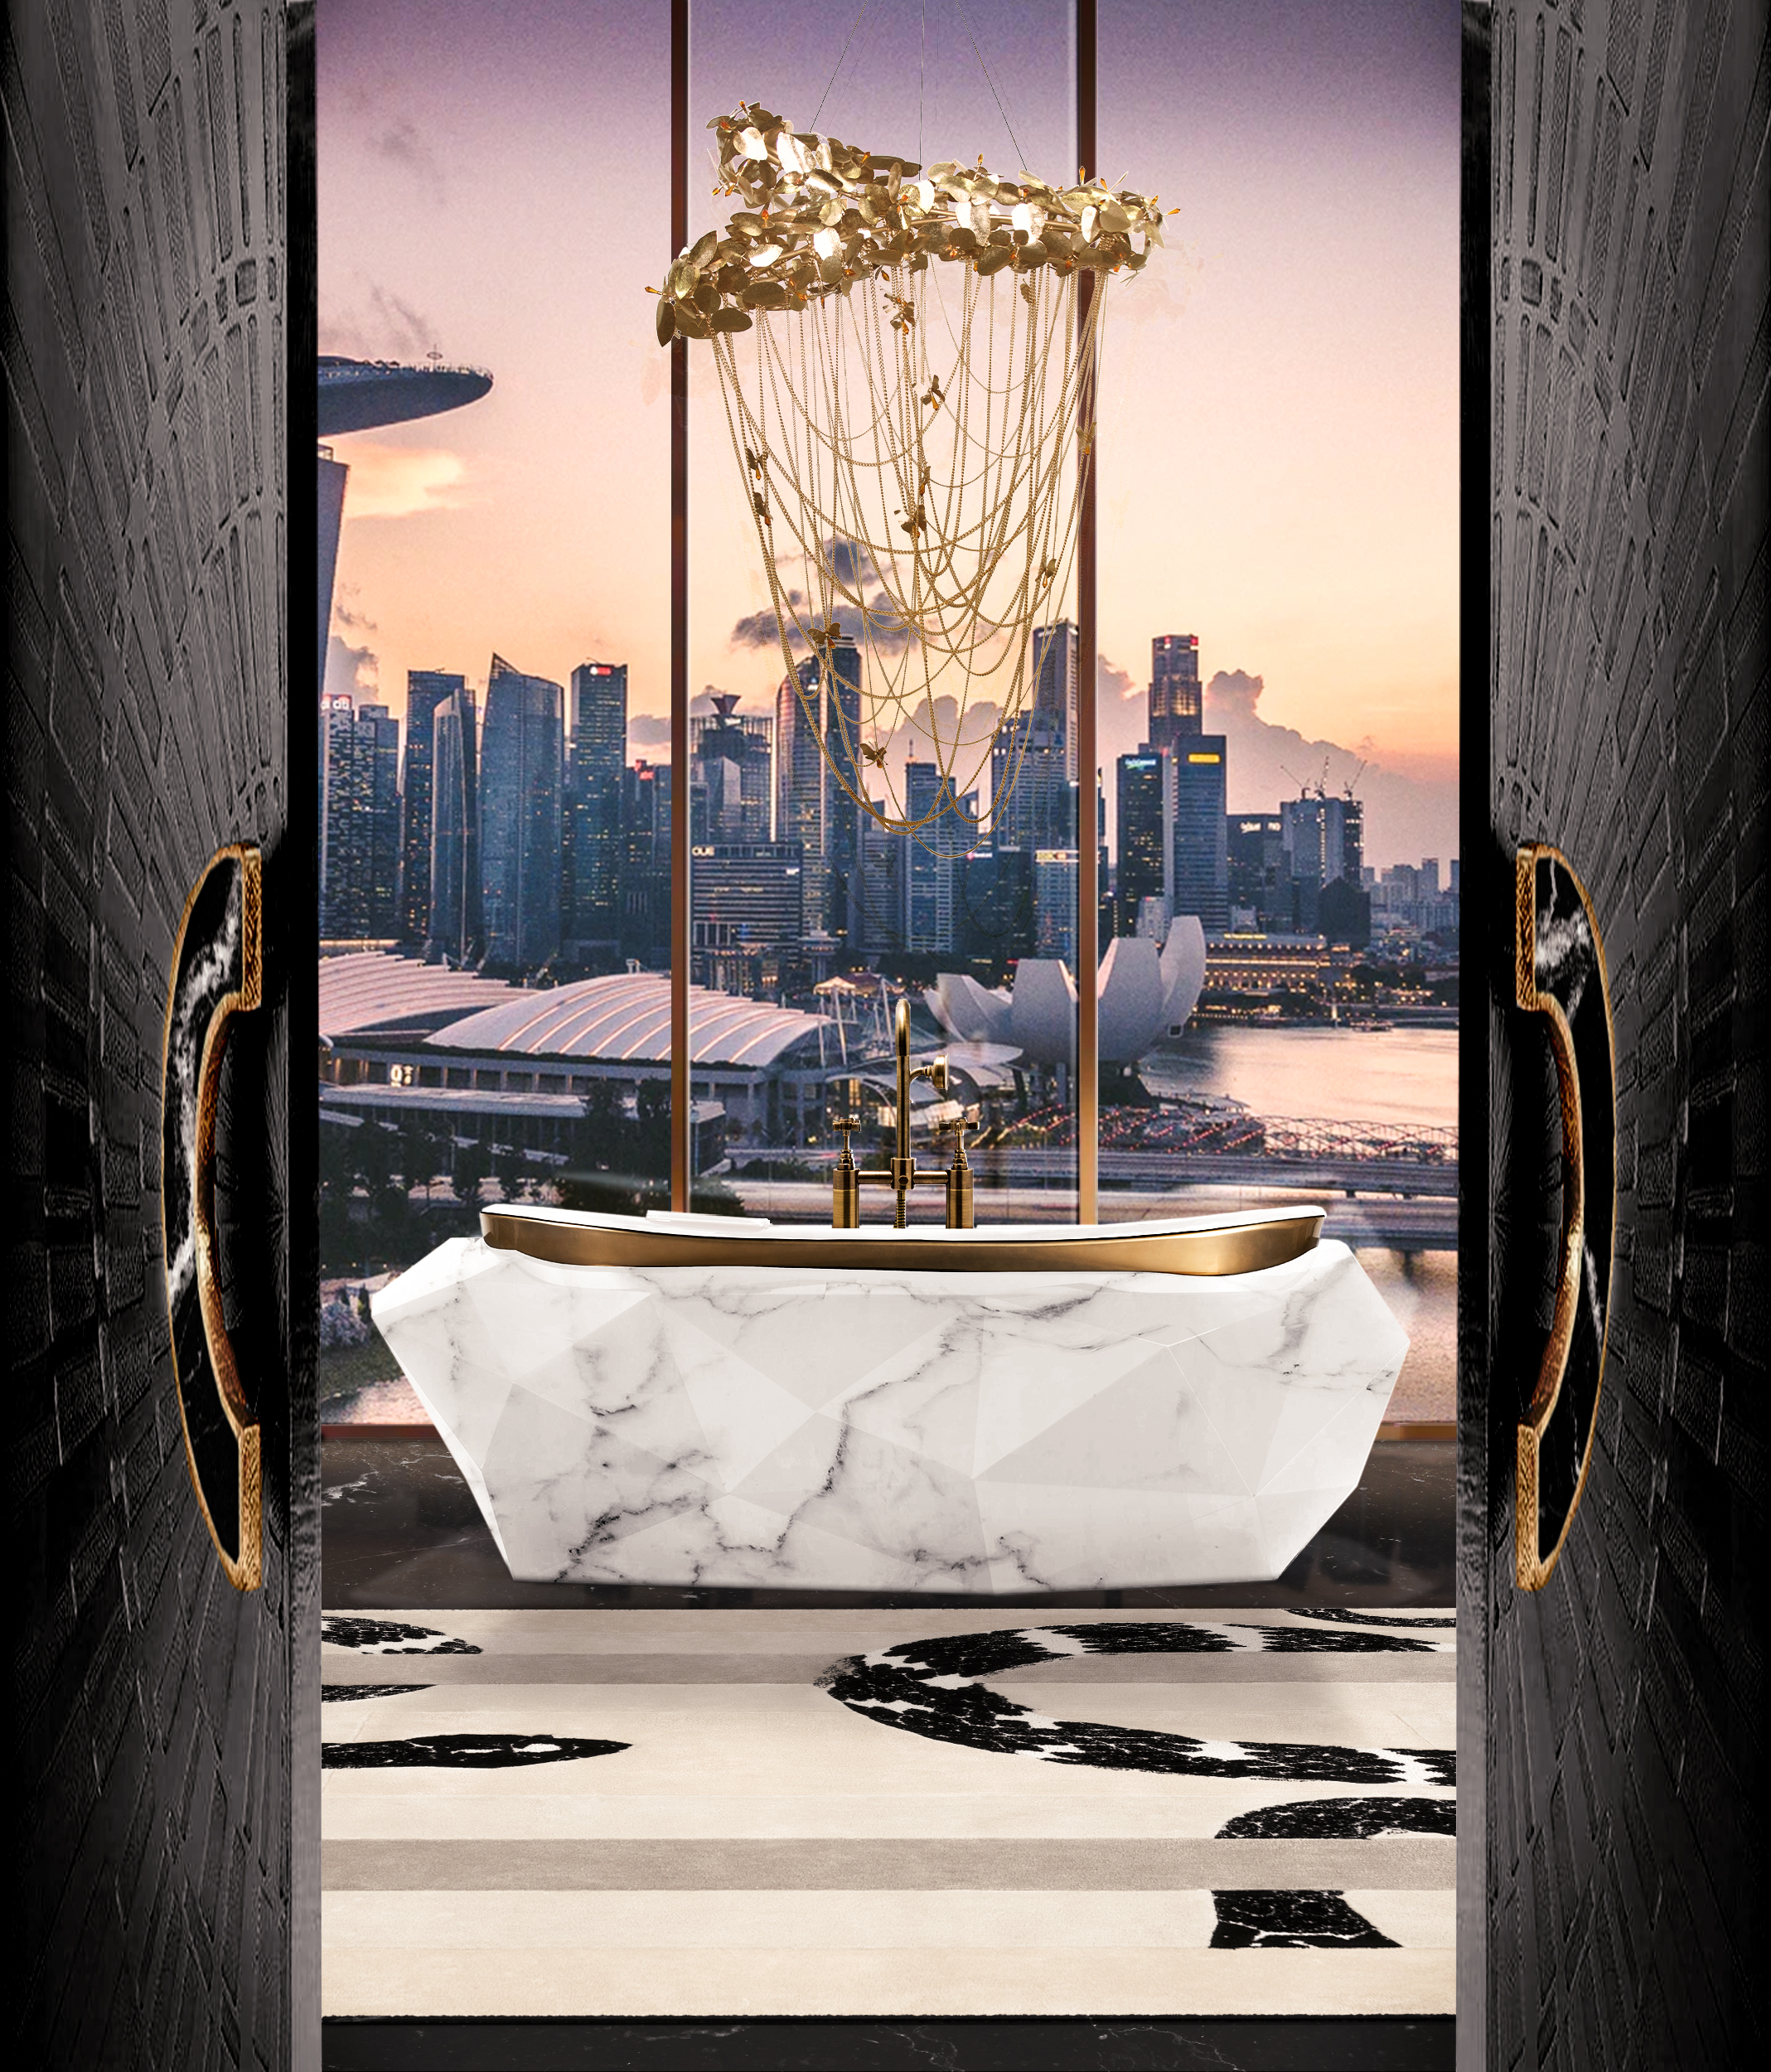 Luxe at home: Maison Valentina presents the latest Diamond Bathtubs Diamond Bathtubs Luxe at home: Maison Valentina presents the latest Diamond Bathtubs diamond faux marble bathtub 23 HR 1